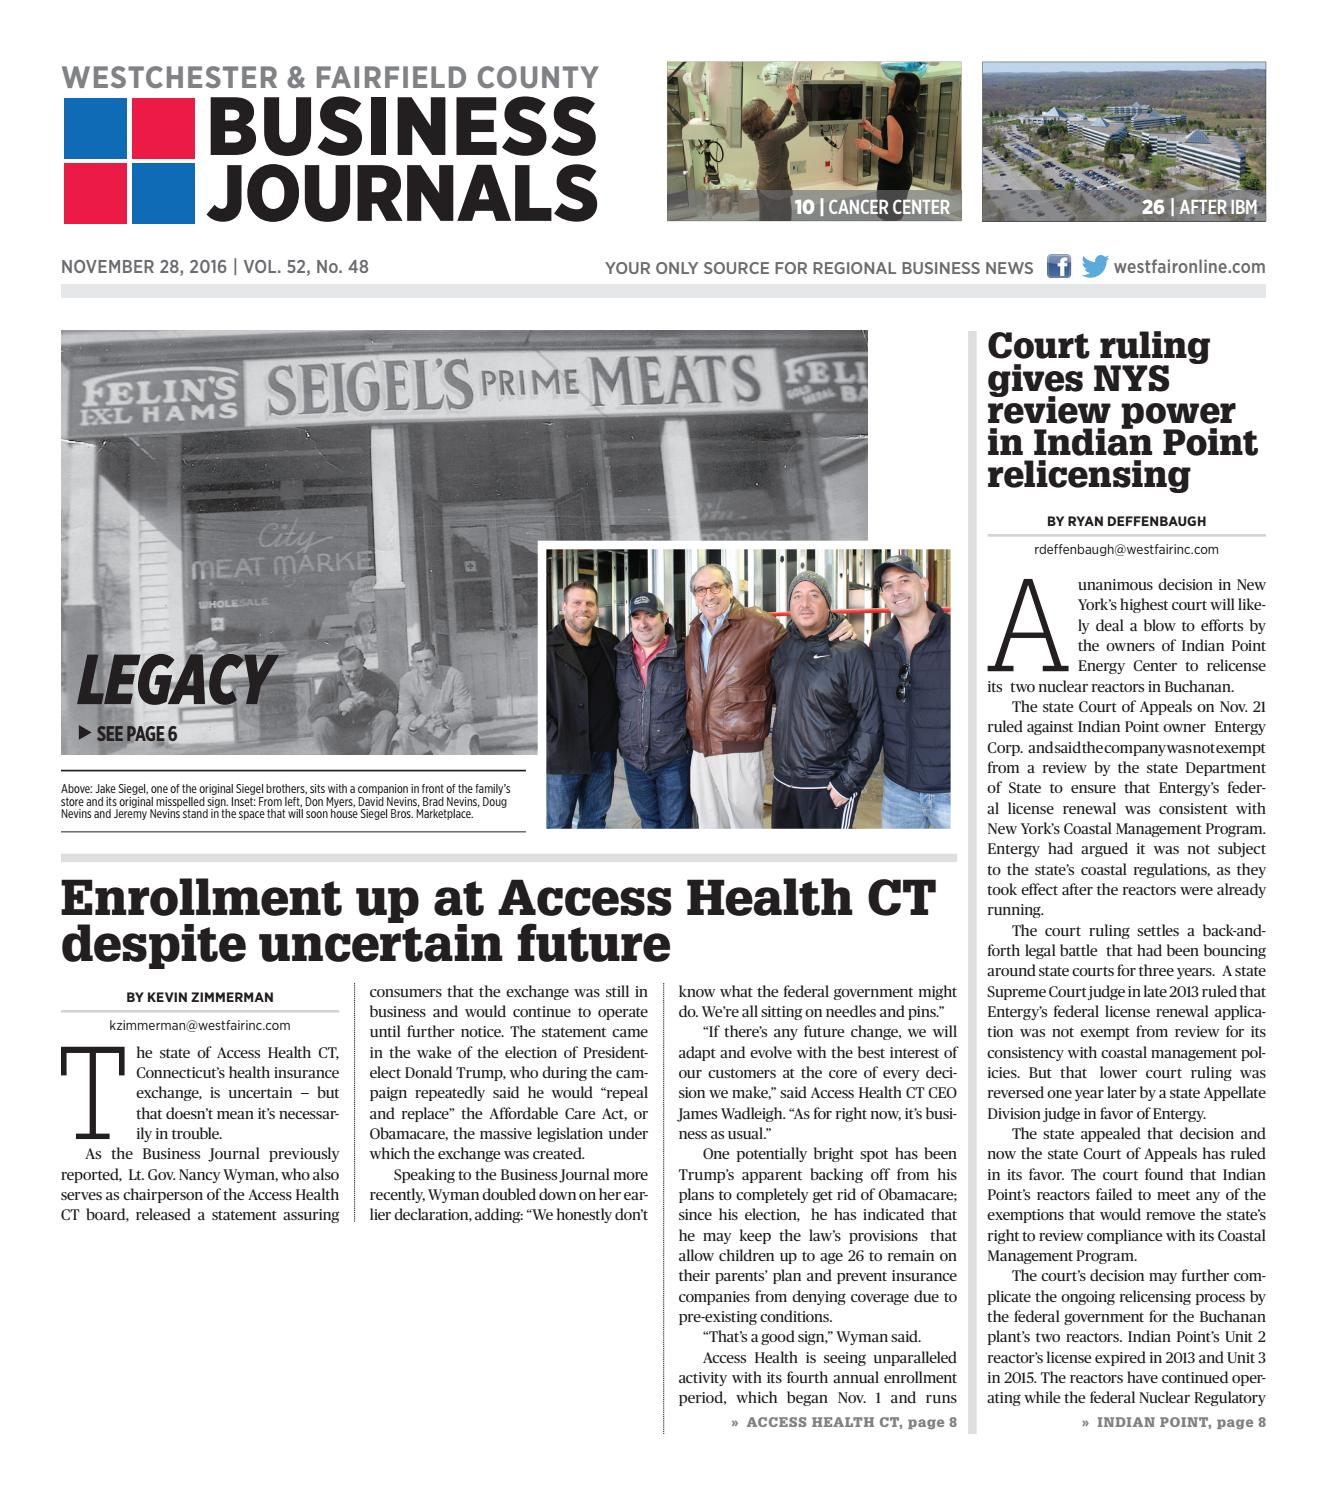 Westchester fairfield county business journals 112816 by wag westchester fairfield county business journals 112816 by wag magazine issuu aiddatafo Image collections